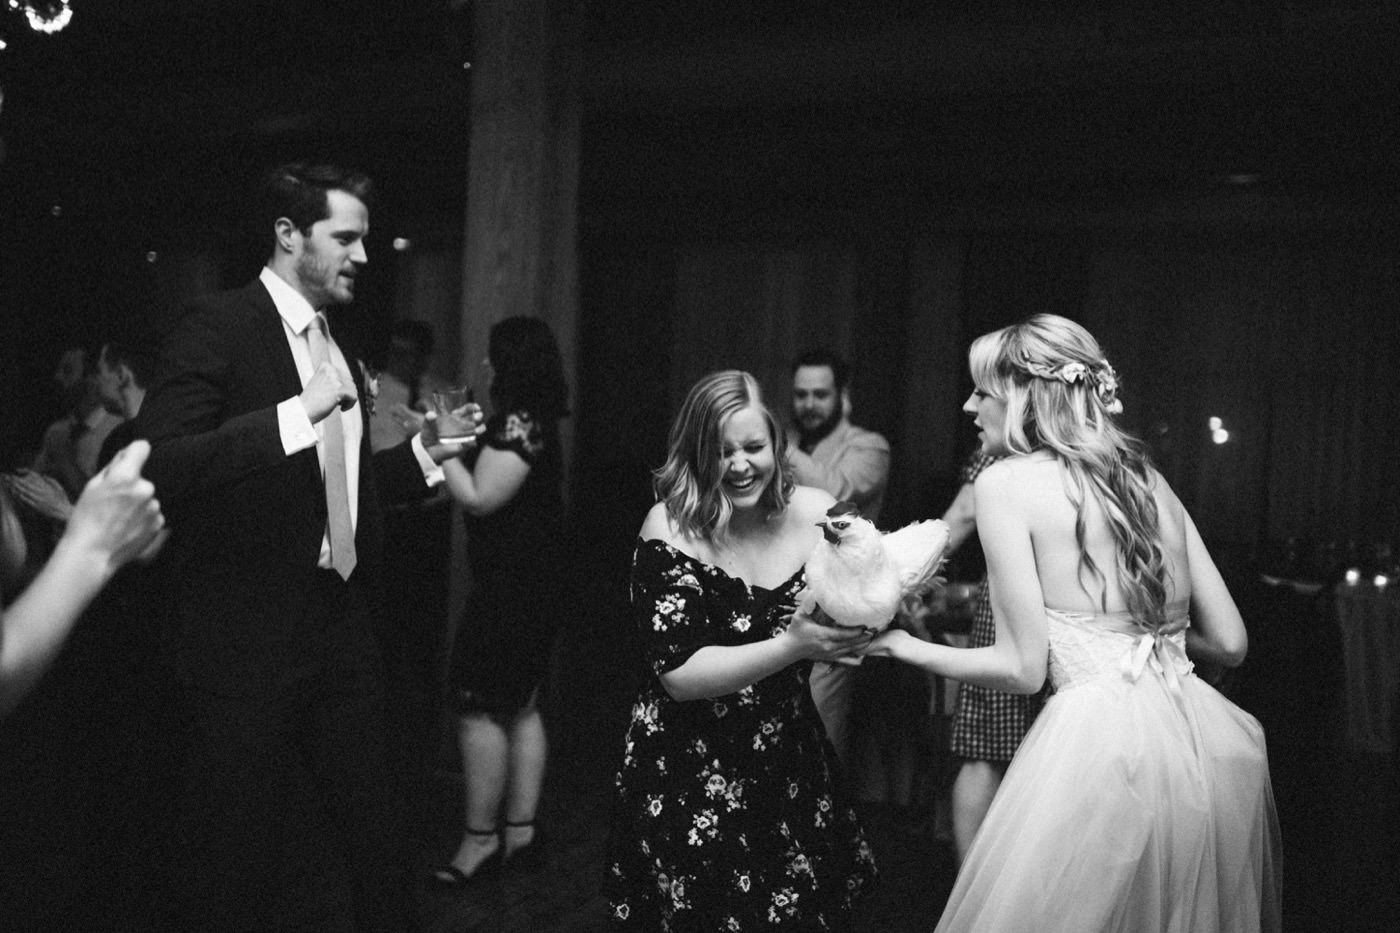 73_Lucy-Daniel-Chicago-Wedding-By-Sarah-Katherine-Davis-Photography1023bw.jpg